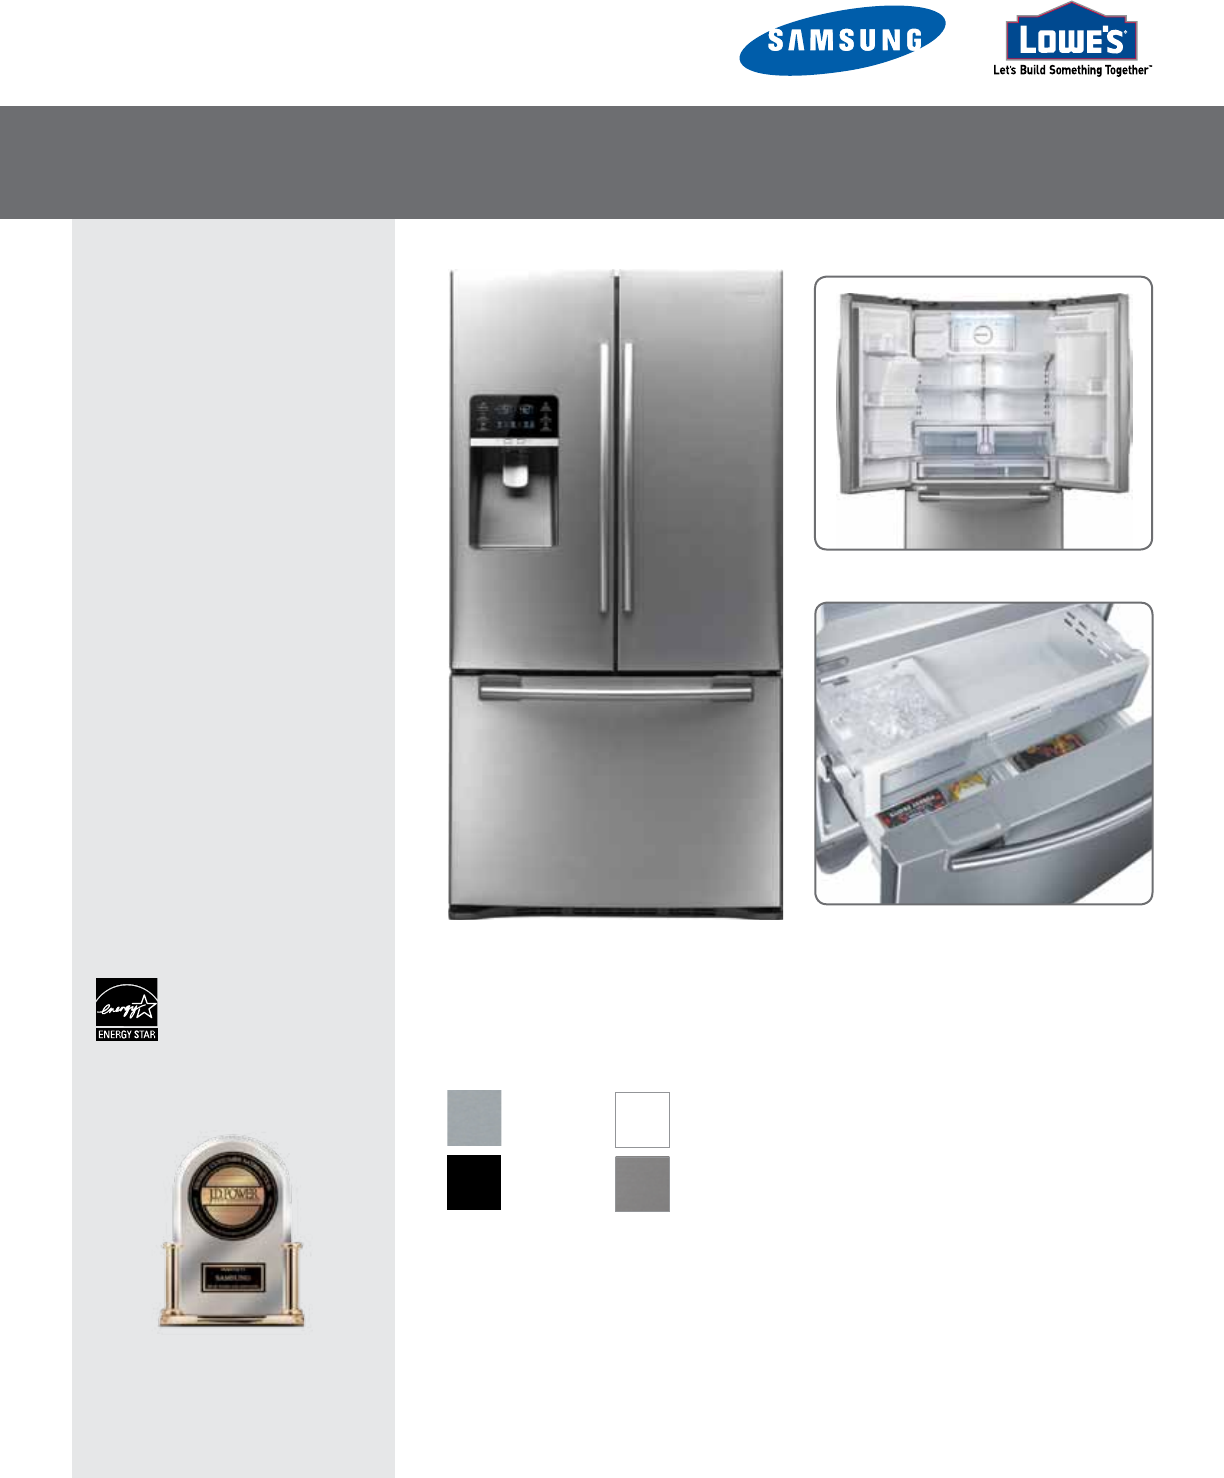 30  pressor  partment Anatomy In A Maytag Mfd2561hes Refrigerator as well Watch likewise Samsung Refrigerator Troubleshooting Self Diagnostics in addition Services in addition Watch. on samsung fridge repair